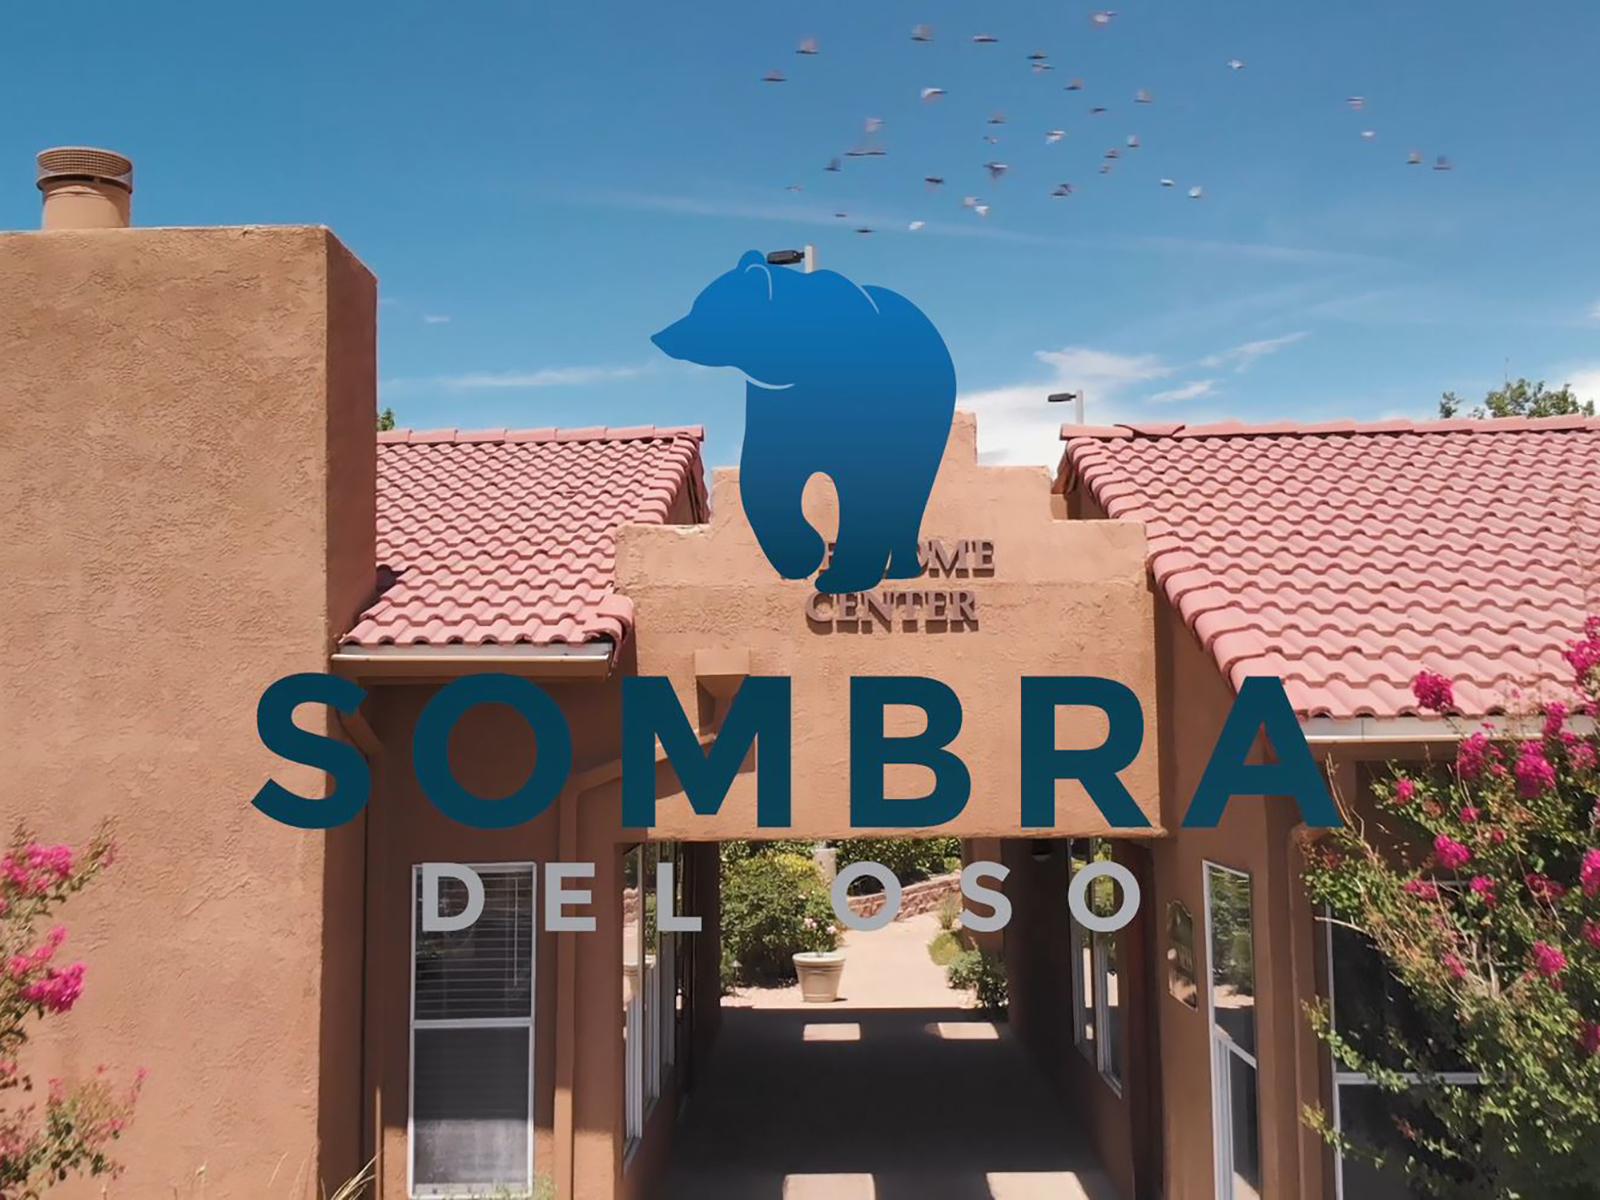 Your new home is waiting for you at Sombra Del Oso Apartments in Albuquerque, NM. Step into our thriving community by experiencing our property video from your own home.